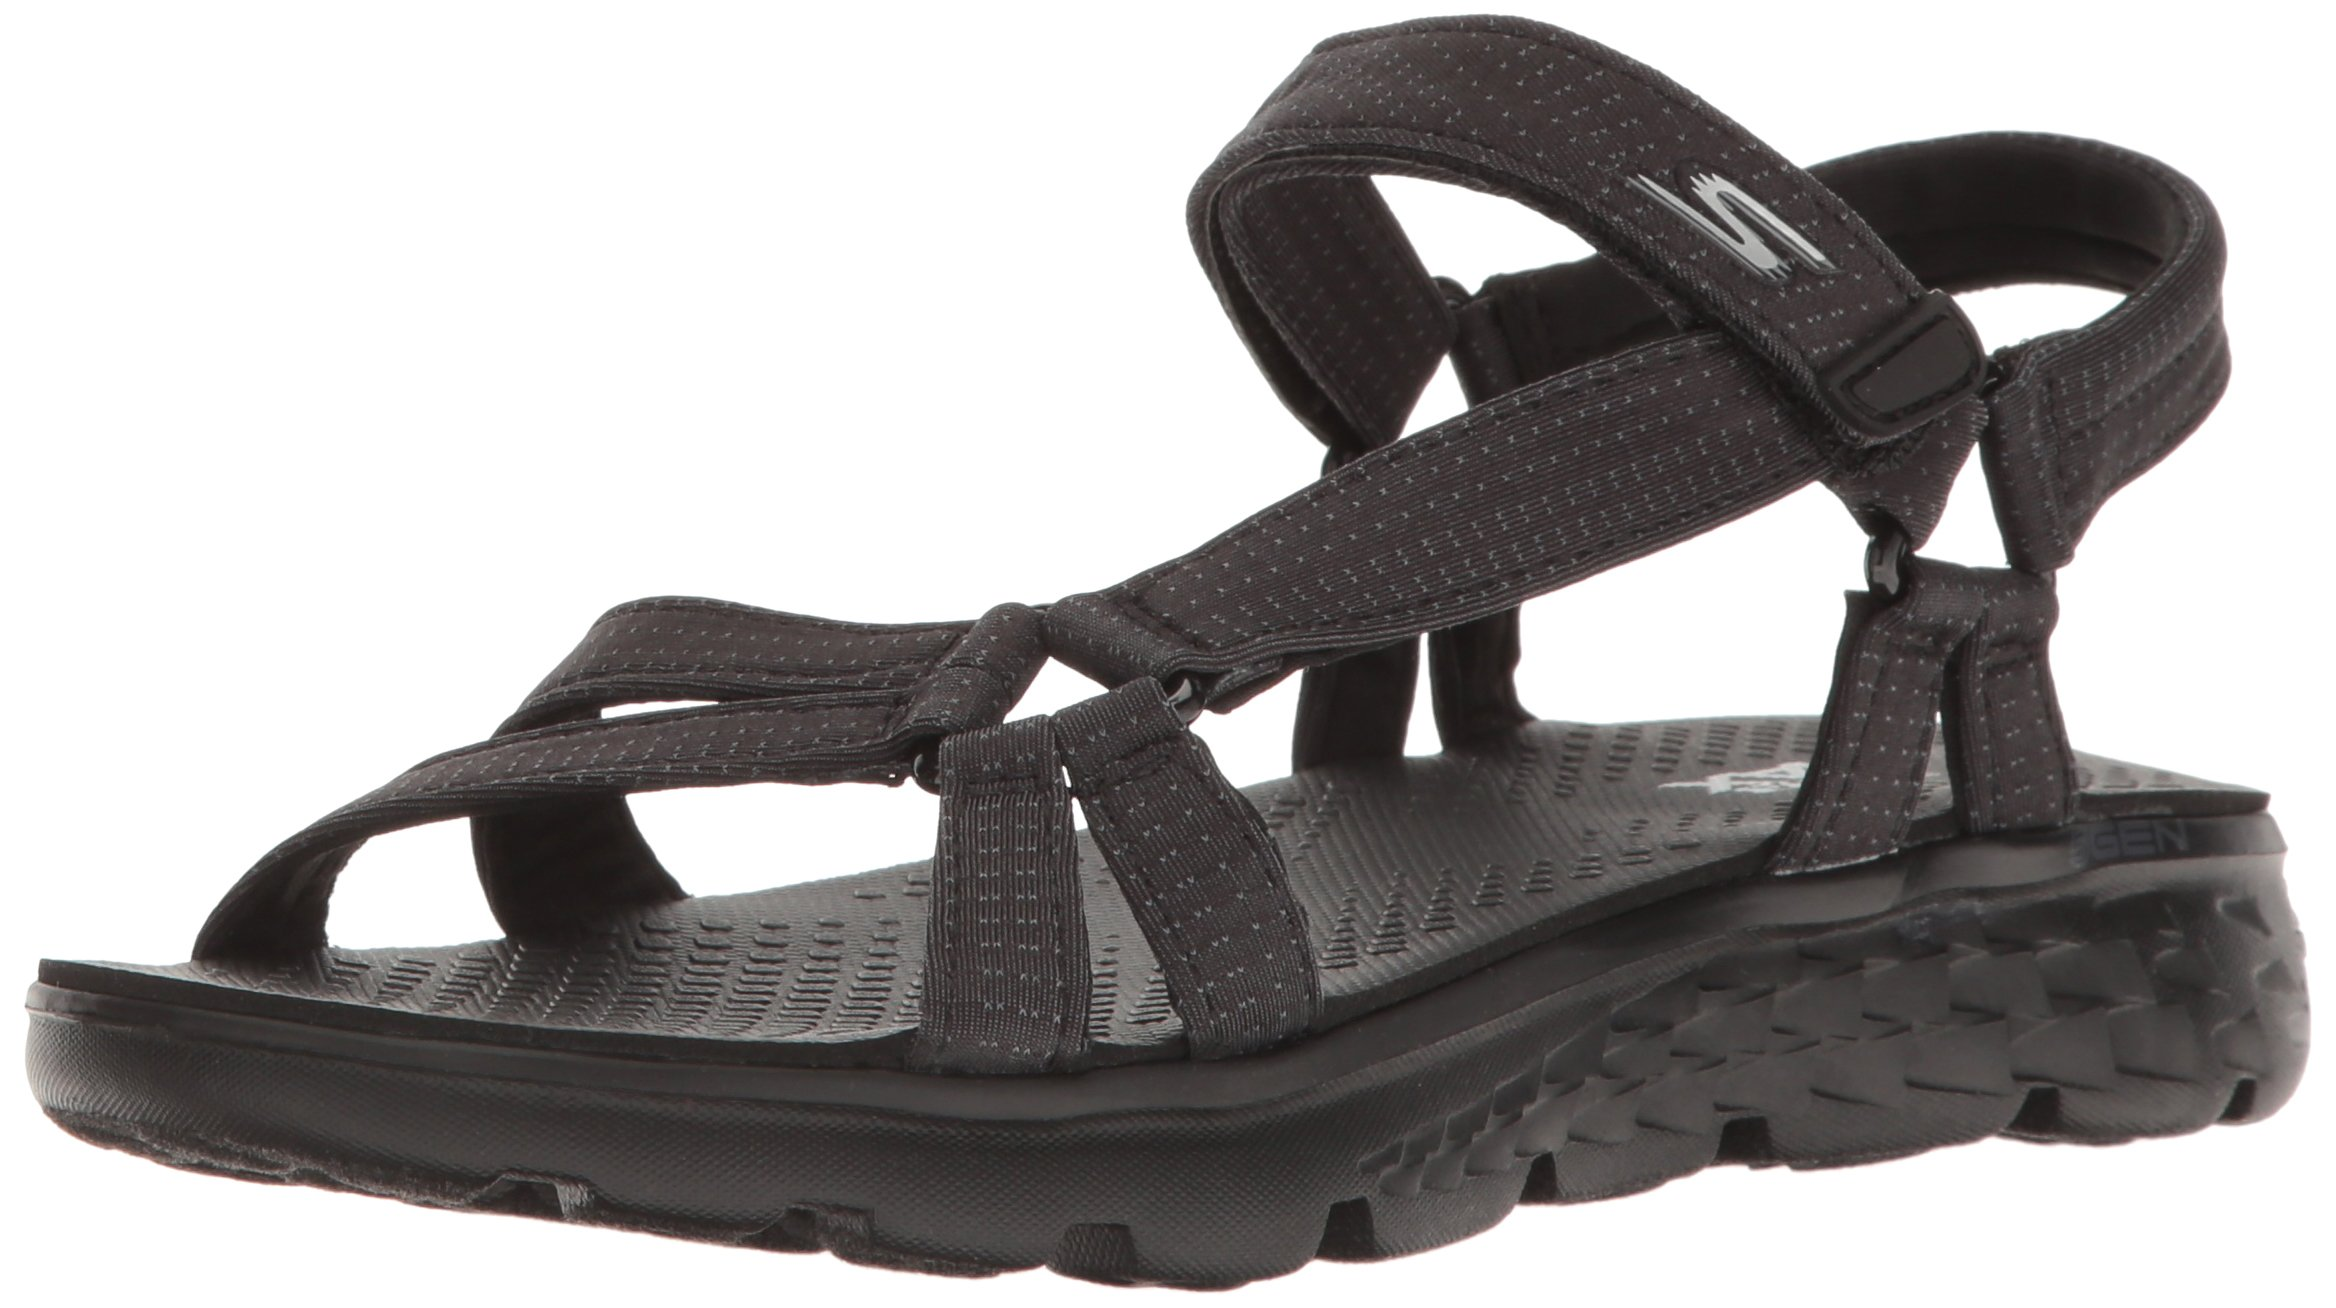 Skechers Performance Women's On The Go 400 Radiance Flip Flop,Black,7 M US